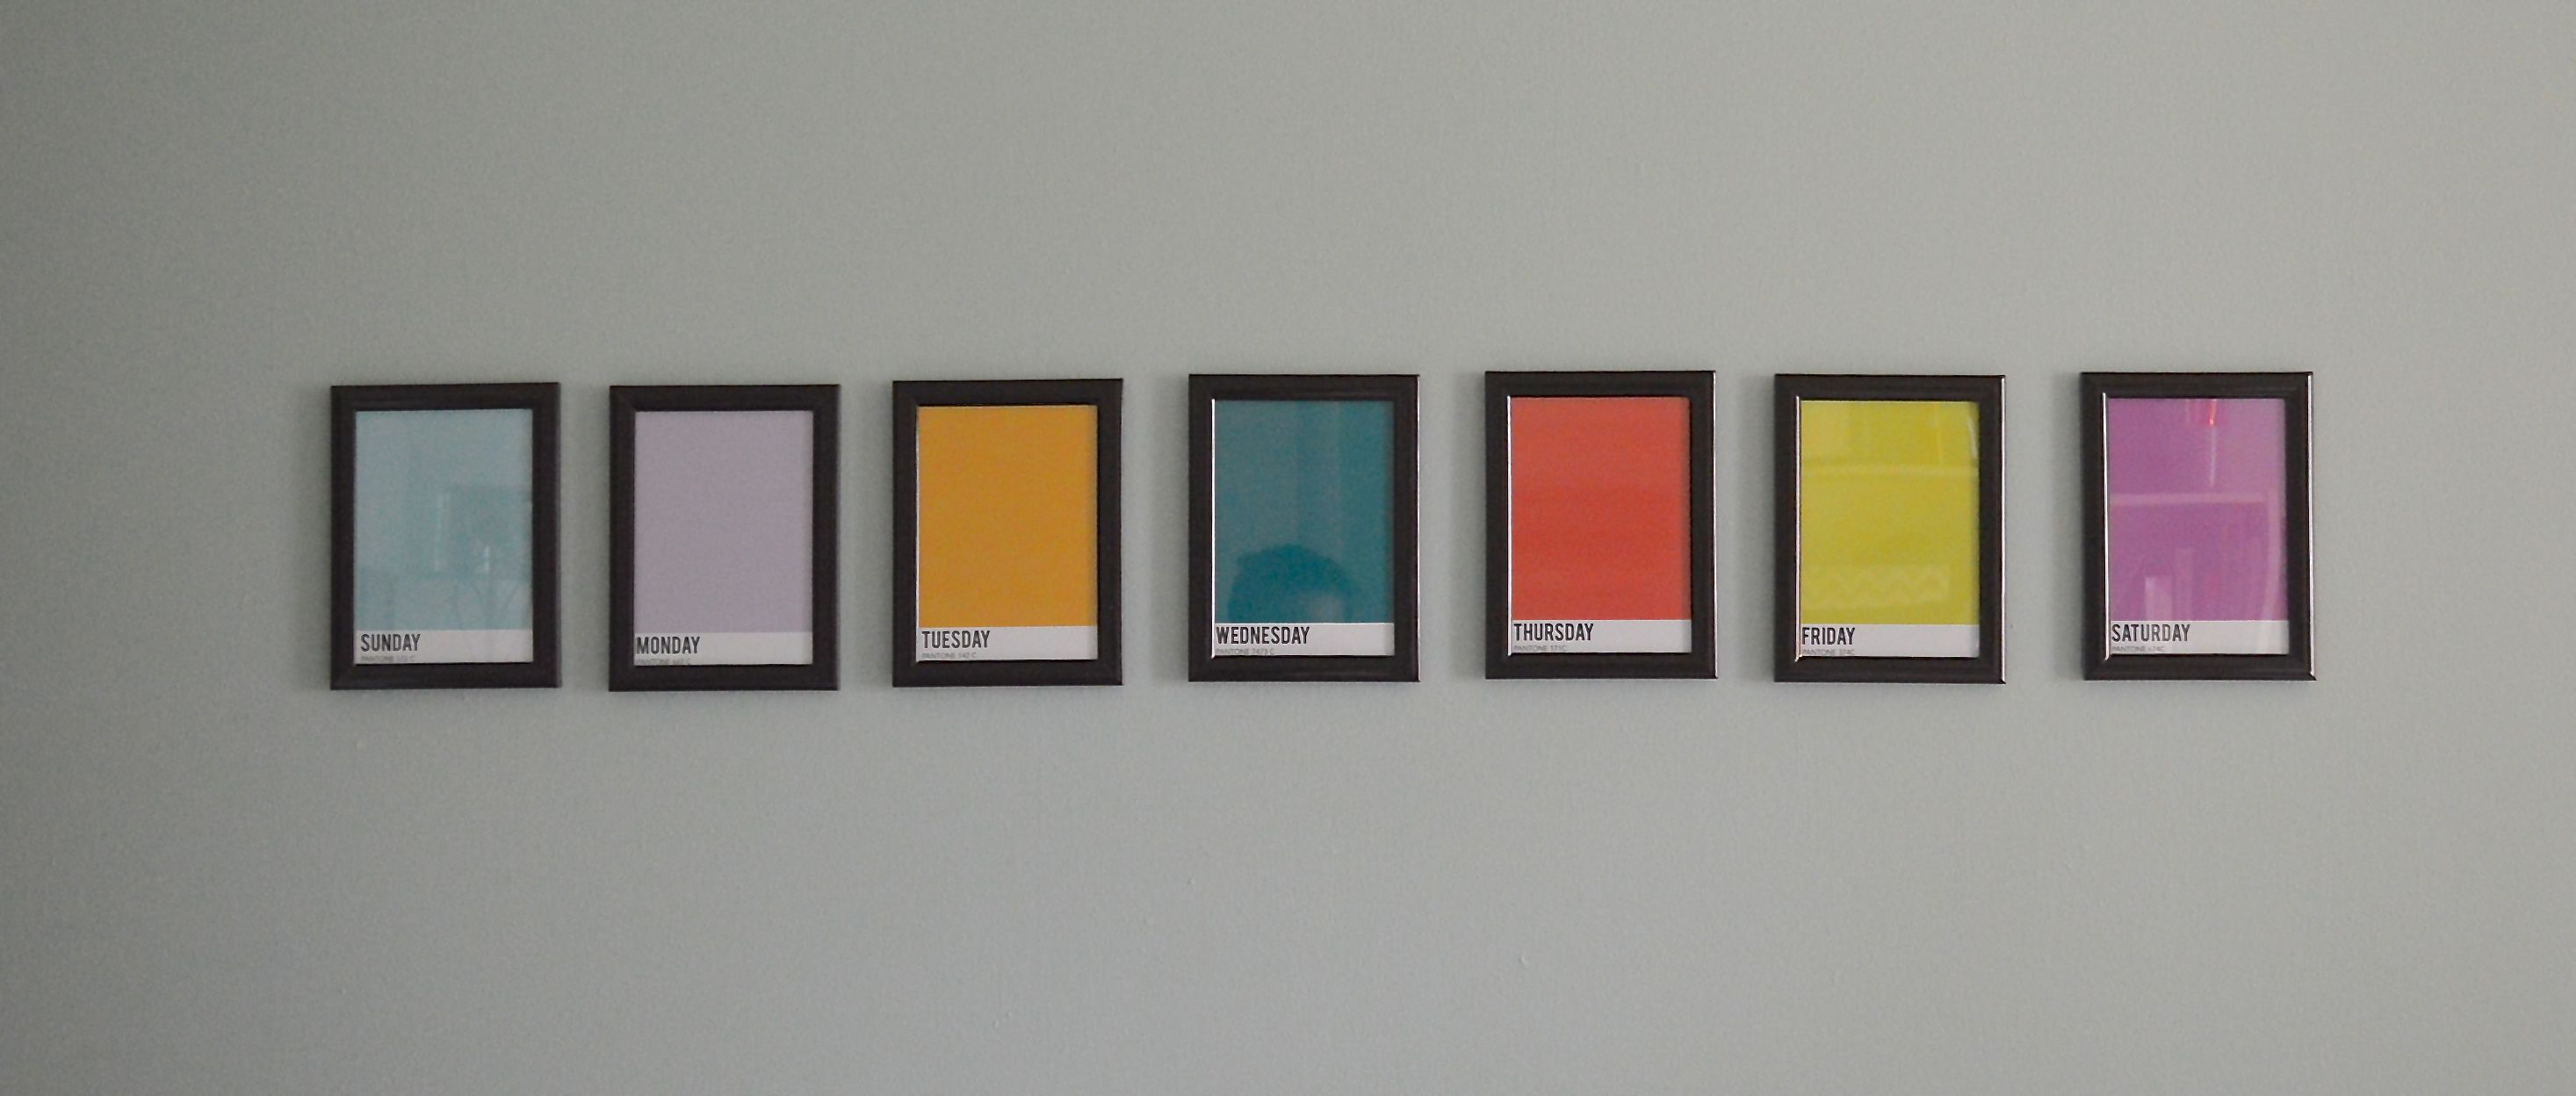 Great Idea For The Office Walls.